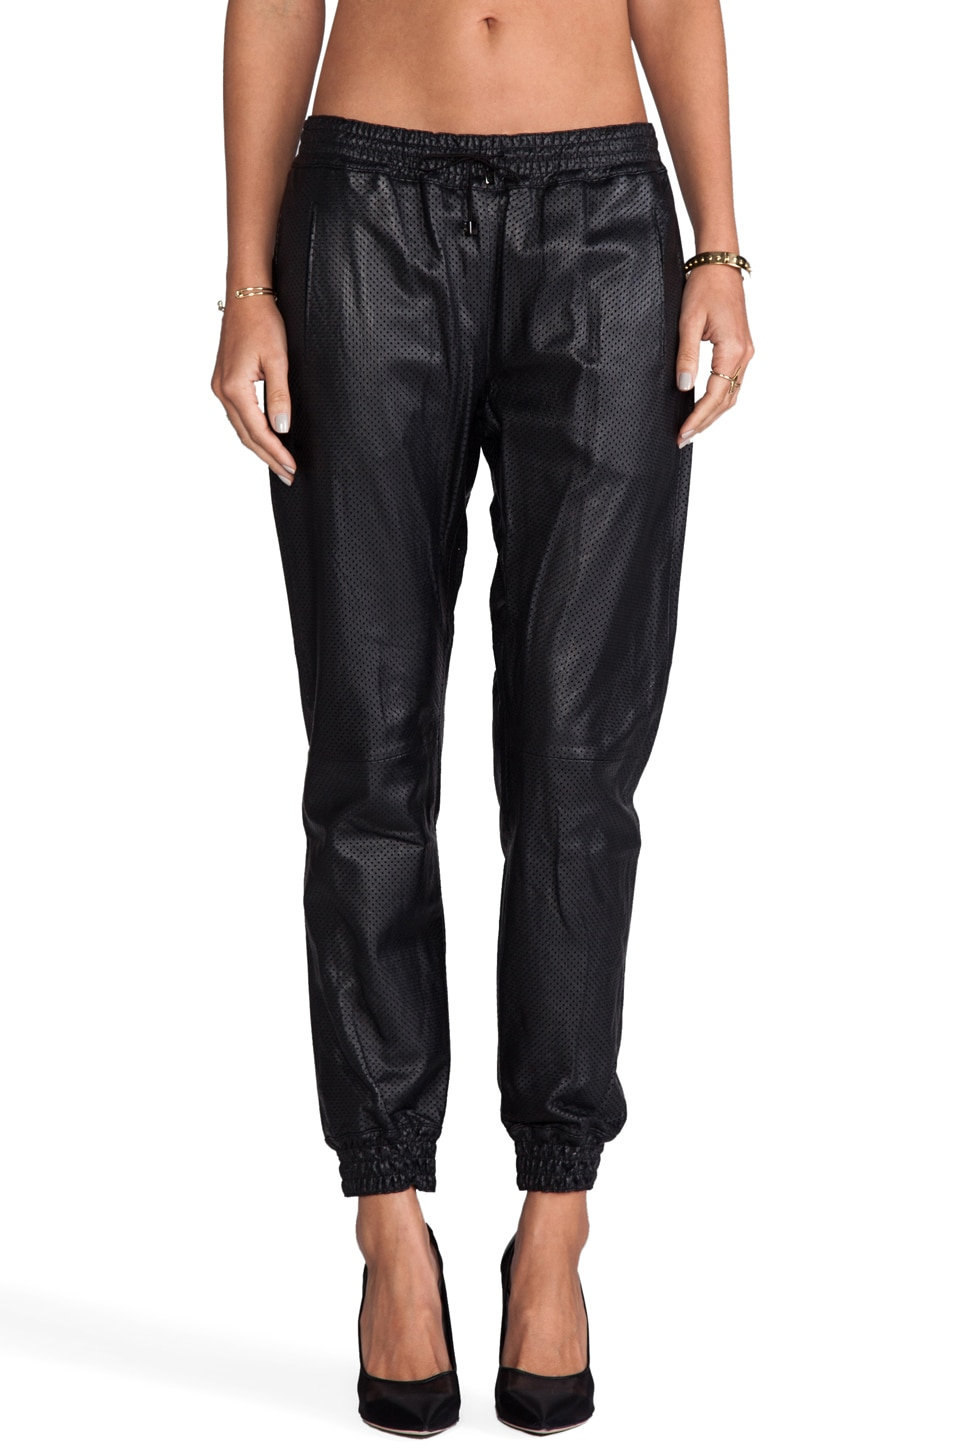 Alexis Cober Leather Track Pant in Lazer Black